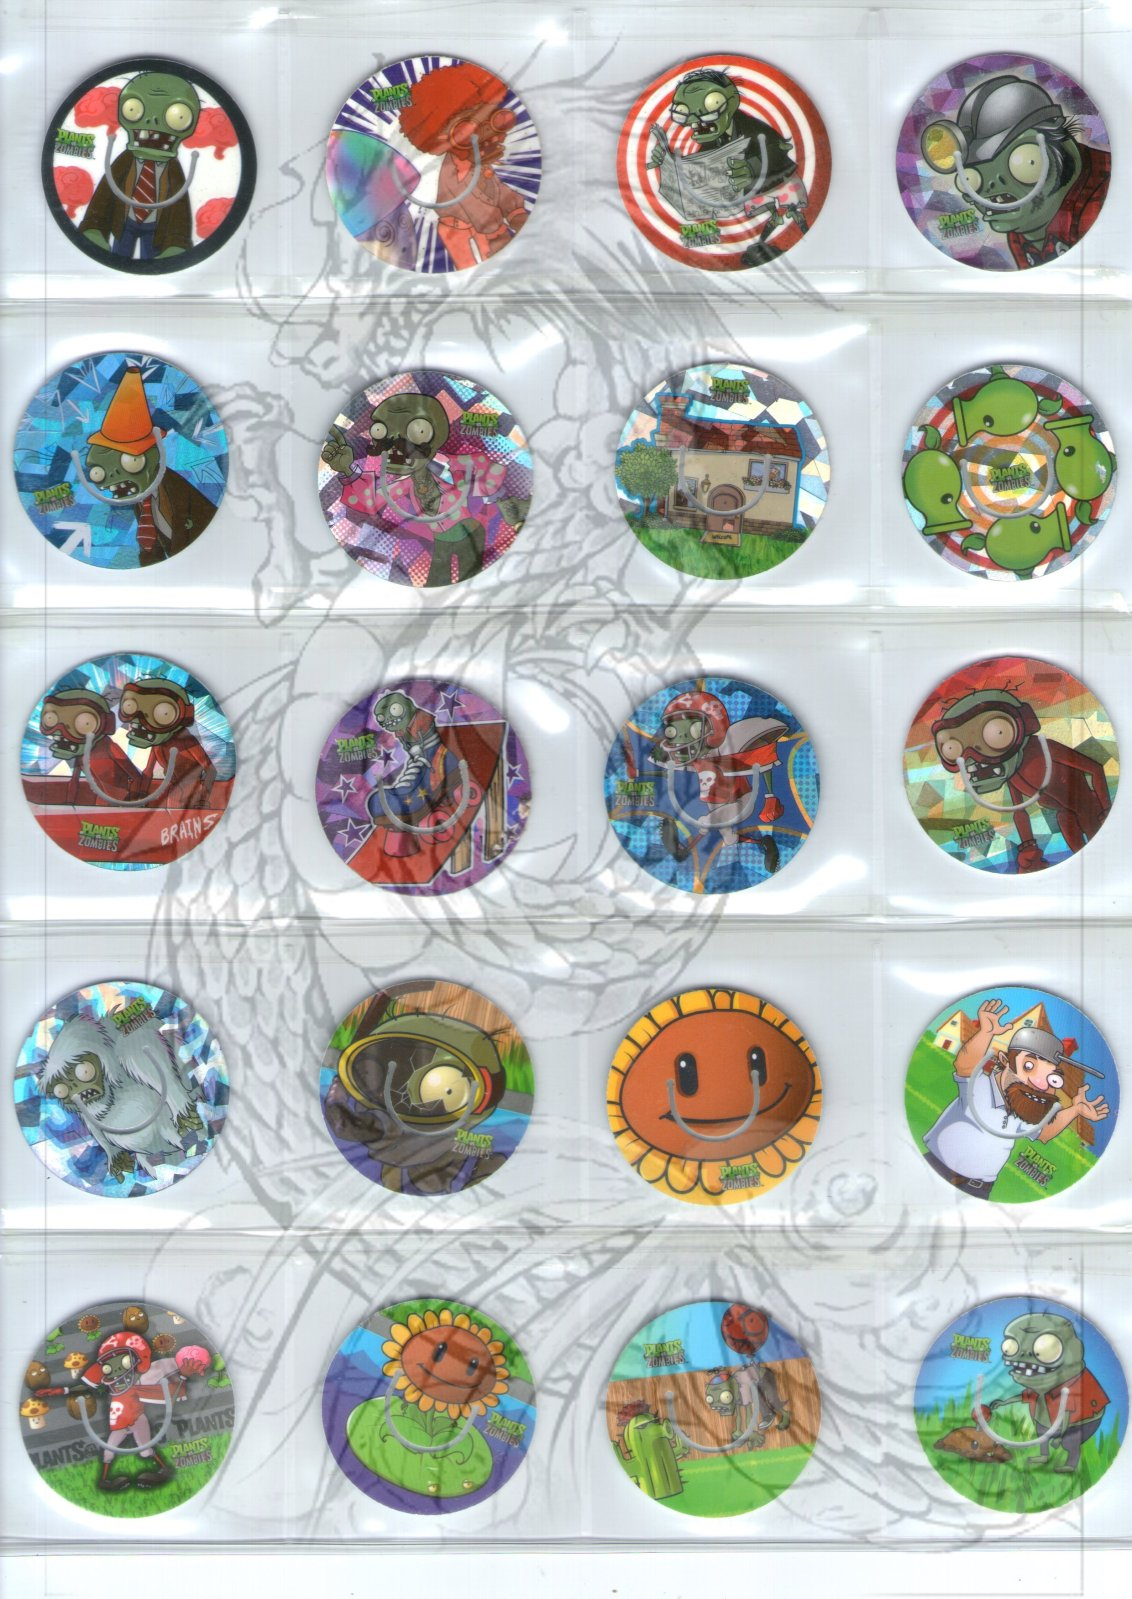 Tazos Plantas Vs Zombies de SABRITAS 2inot5